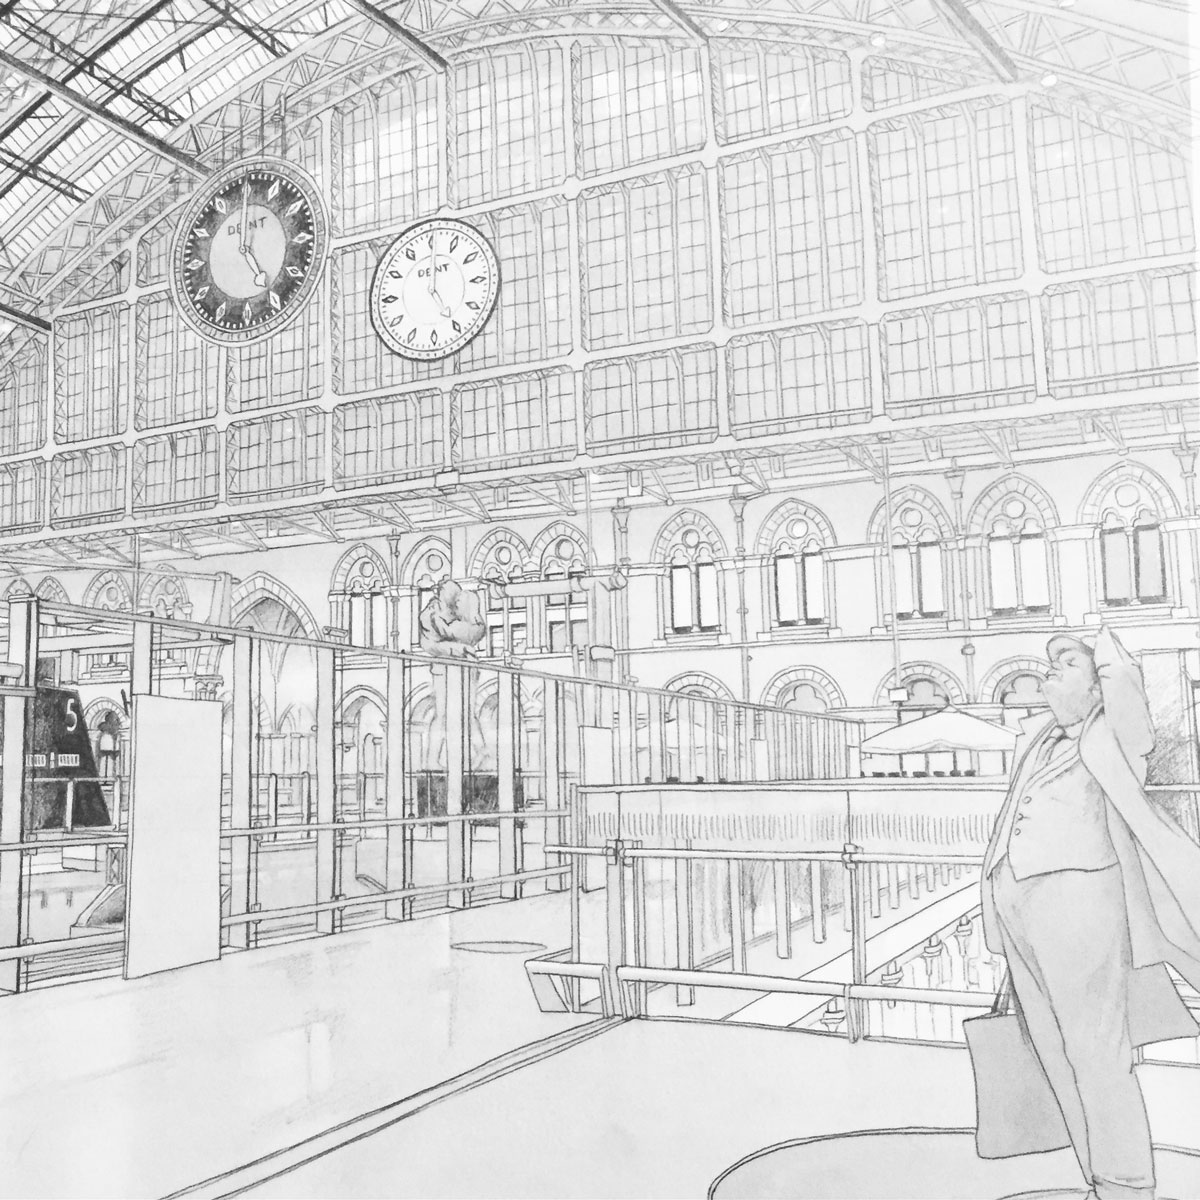 St Pancras London Sketches